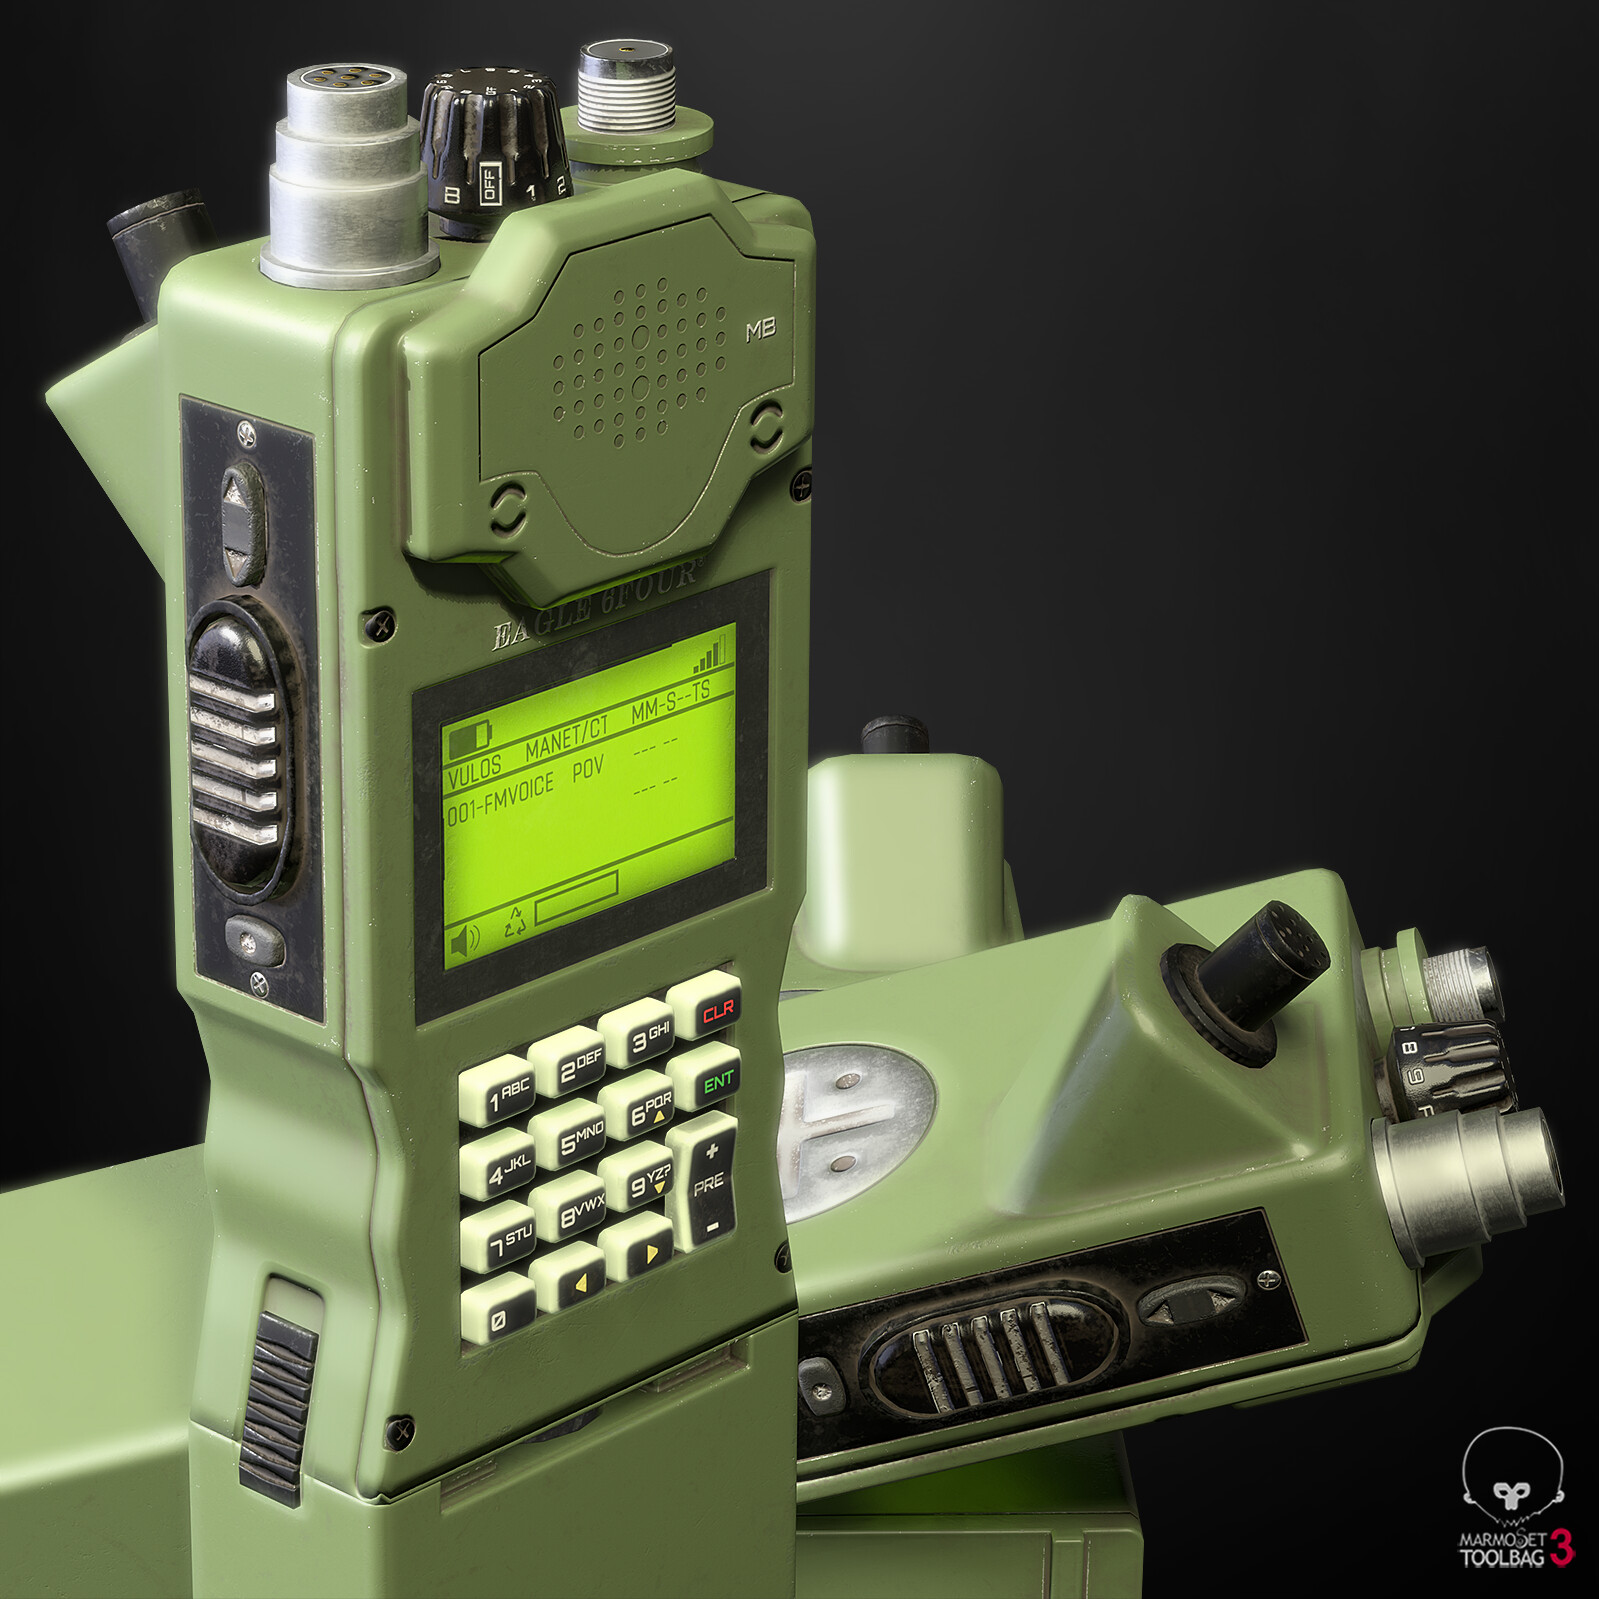 ArtStation - Handheld Military Radio, Joey Harris